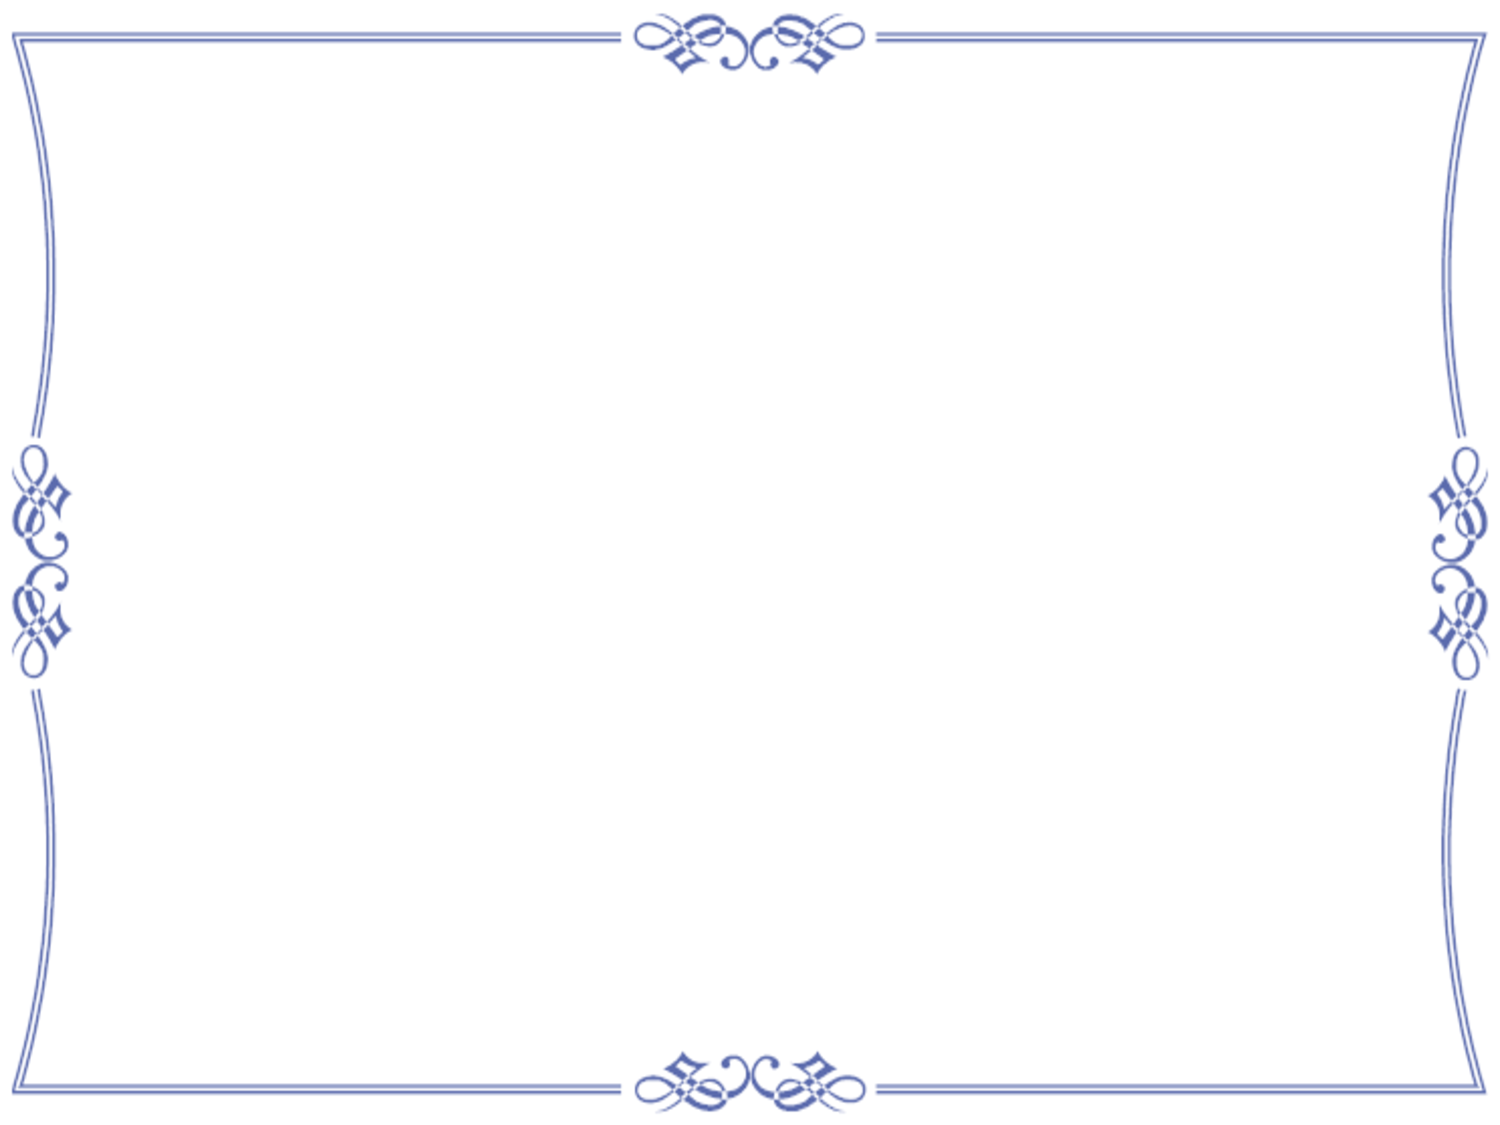 Elegant Blue Certificate Border By Bamafun | Design Prints ...